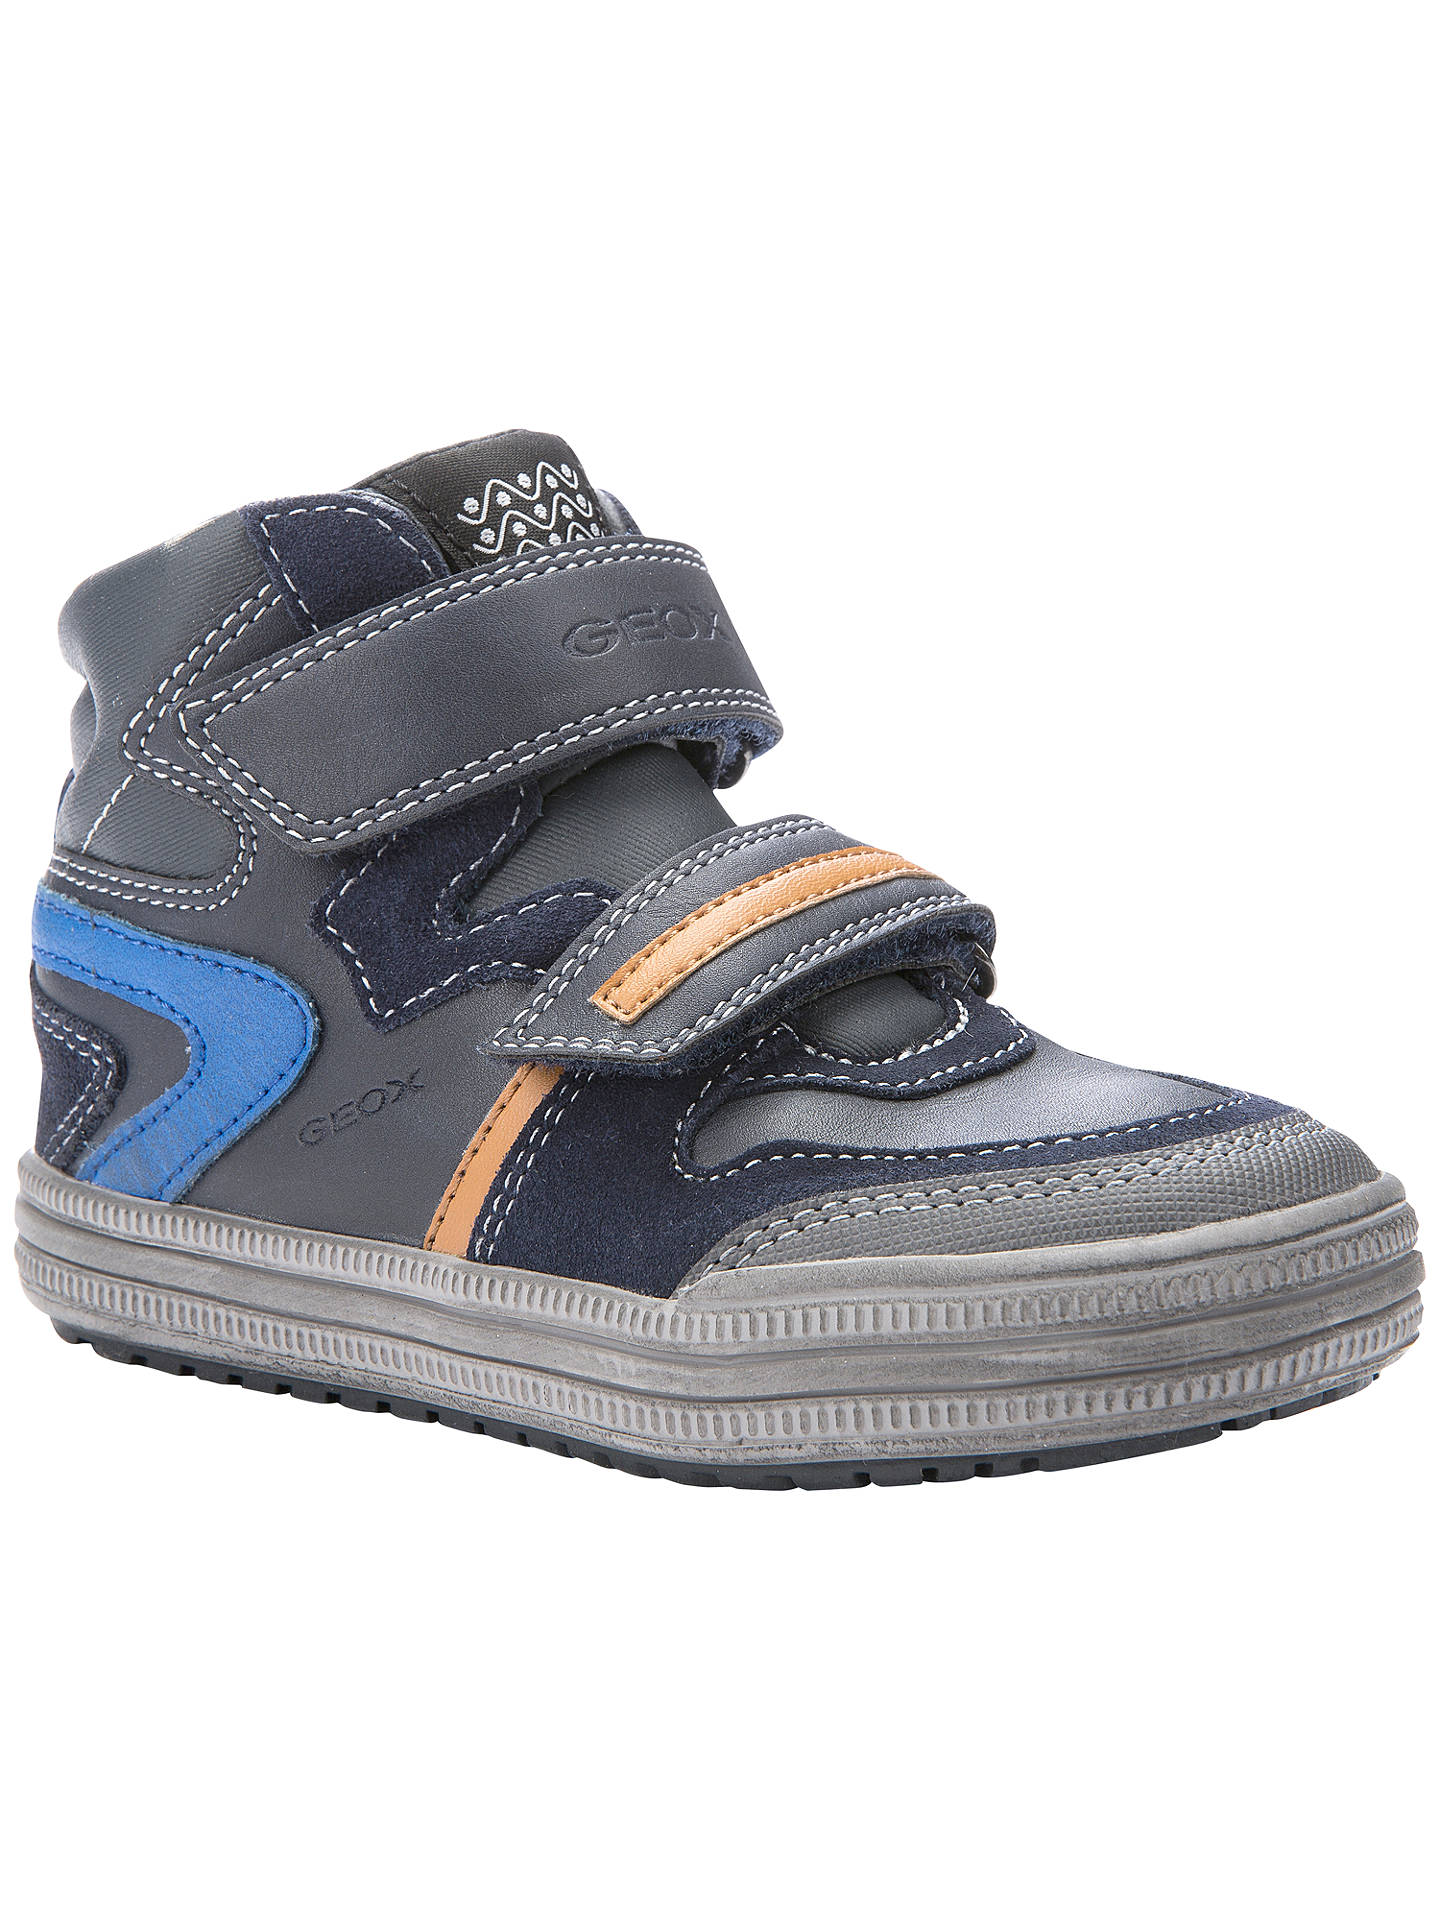 best service 15e2d 4868d Geox Elvis High Top Casual Trainers at John Lewis & Partners